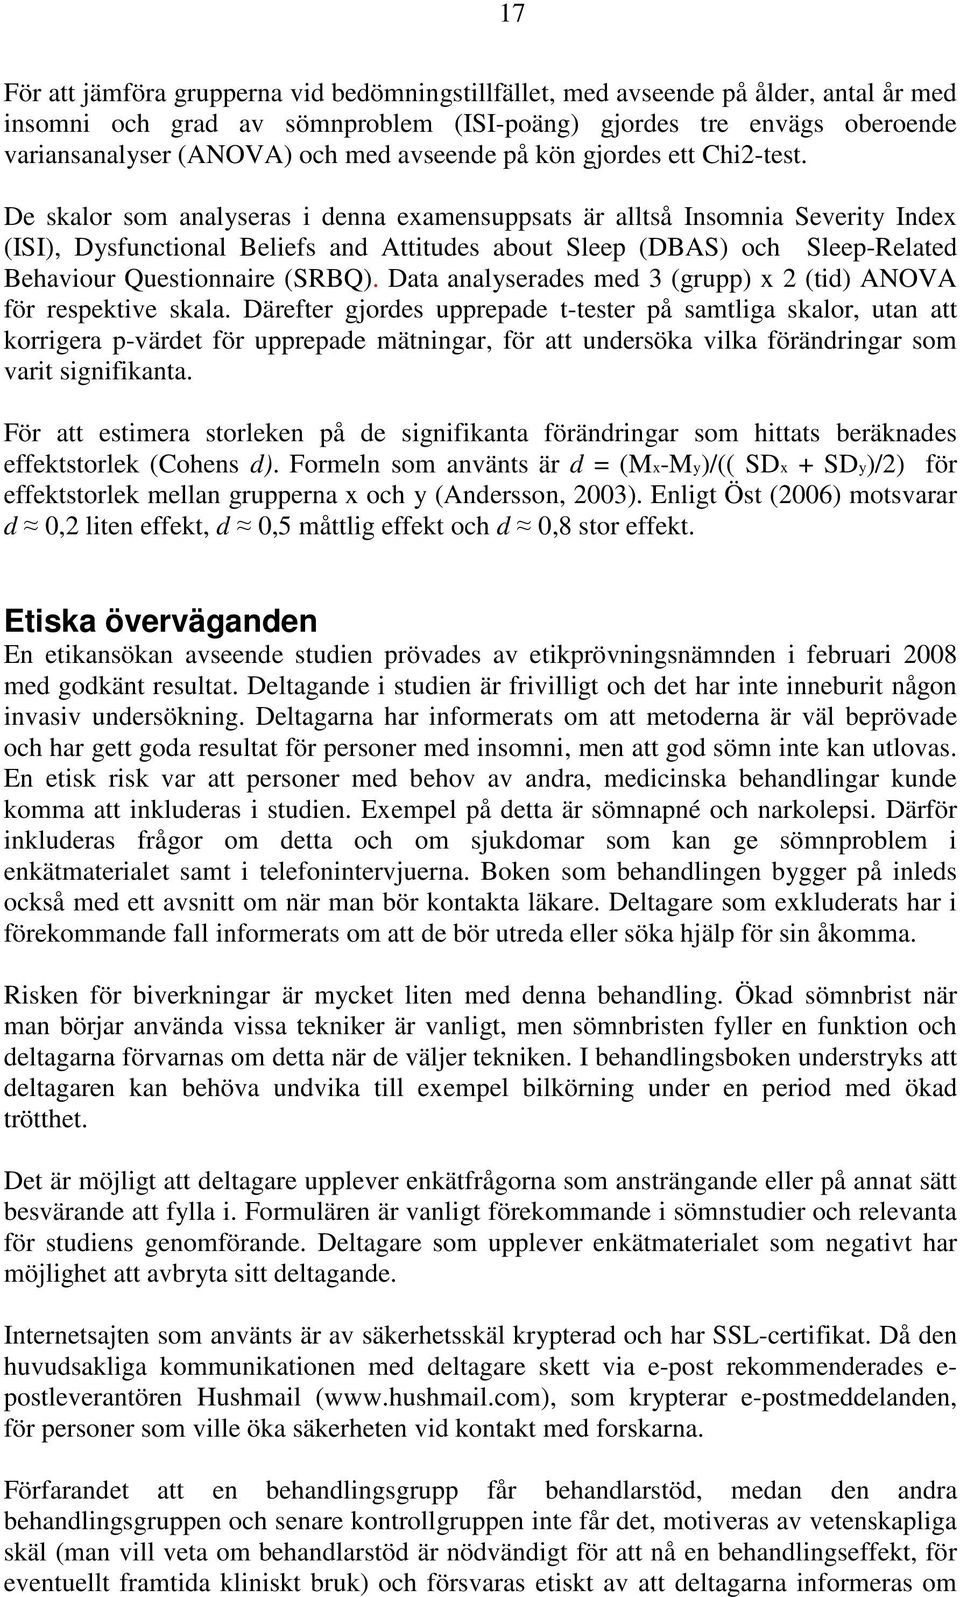 De skalor som analyseras i denna examensuppsats är alltså Insomnia Severity Index (ISI), Dysfunctional Beliefs and Attitudes about Sleep (DBAS) och Sleep-Related Behaviour Questionnaire (SRBQ).